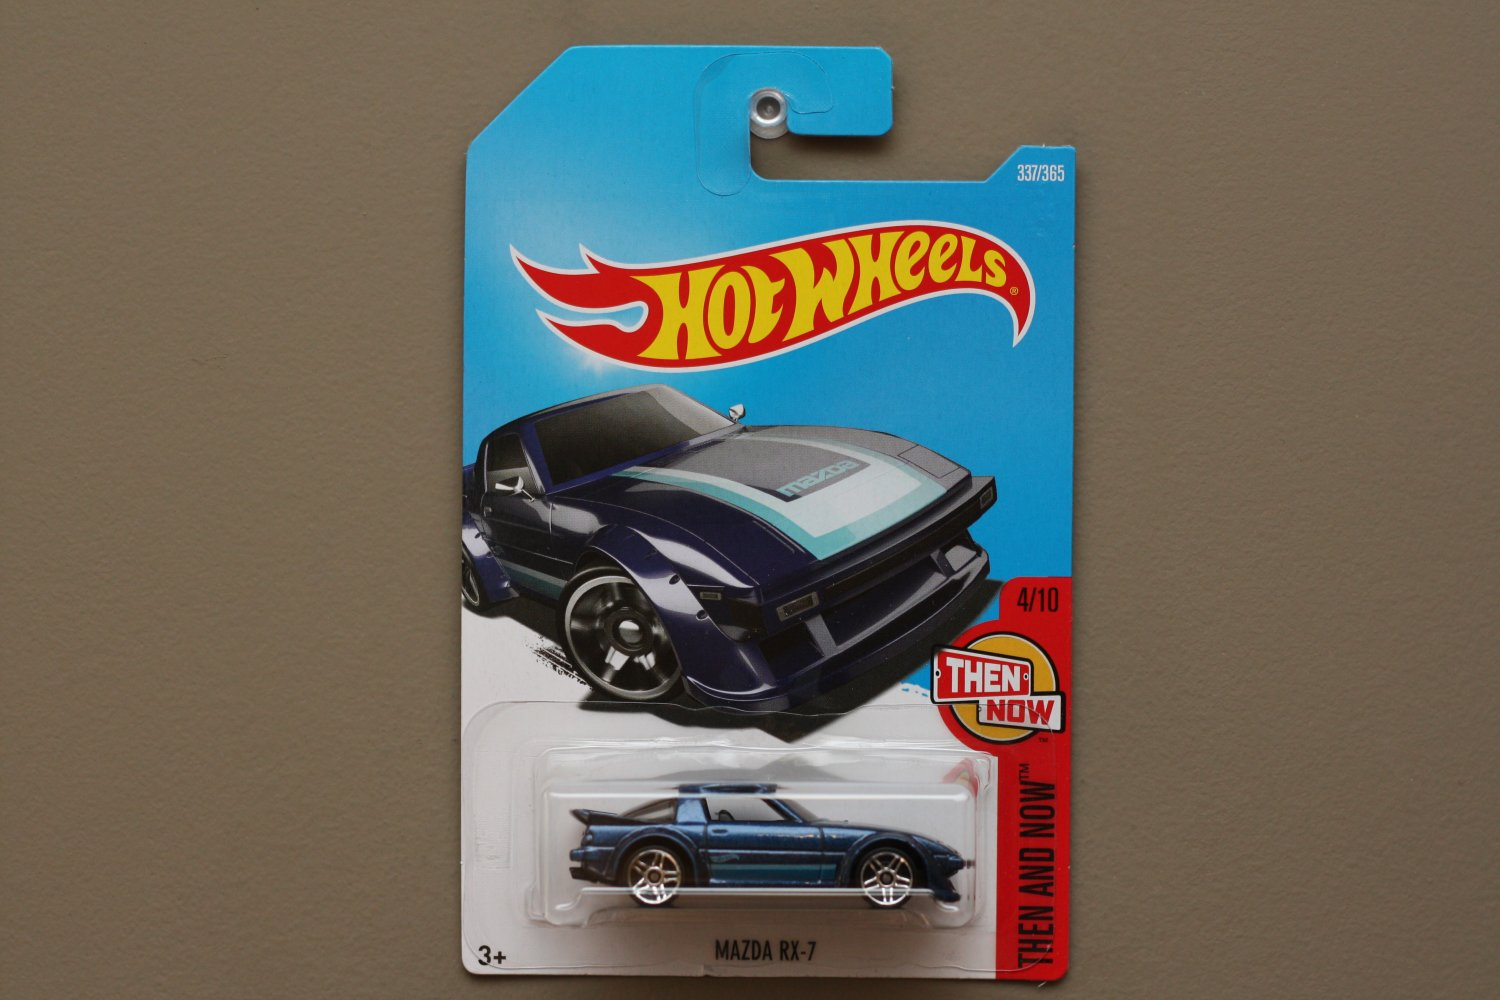 Hot Wheels 2017 Then And Now Mazda RX-7 (blue)